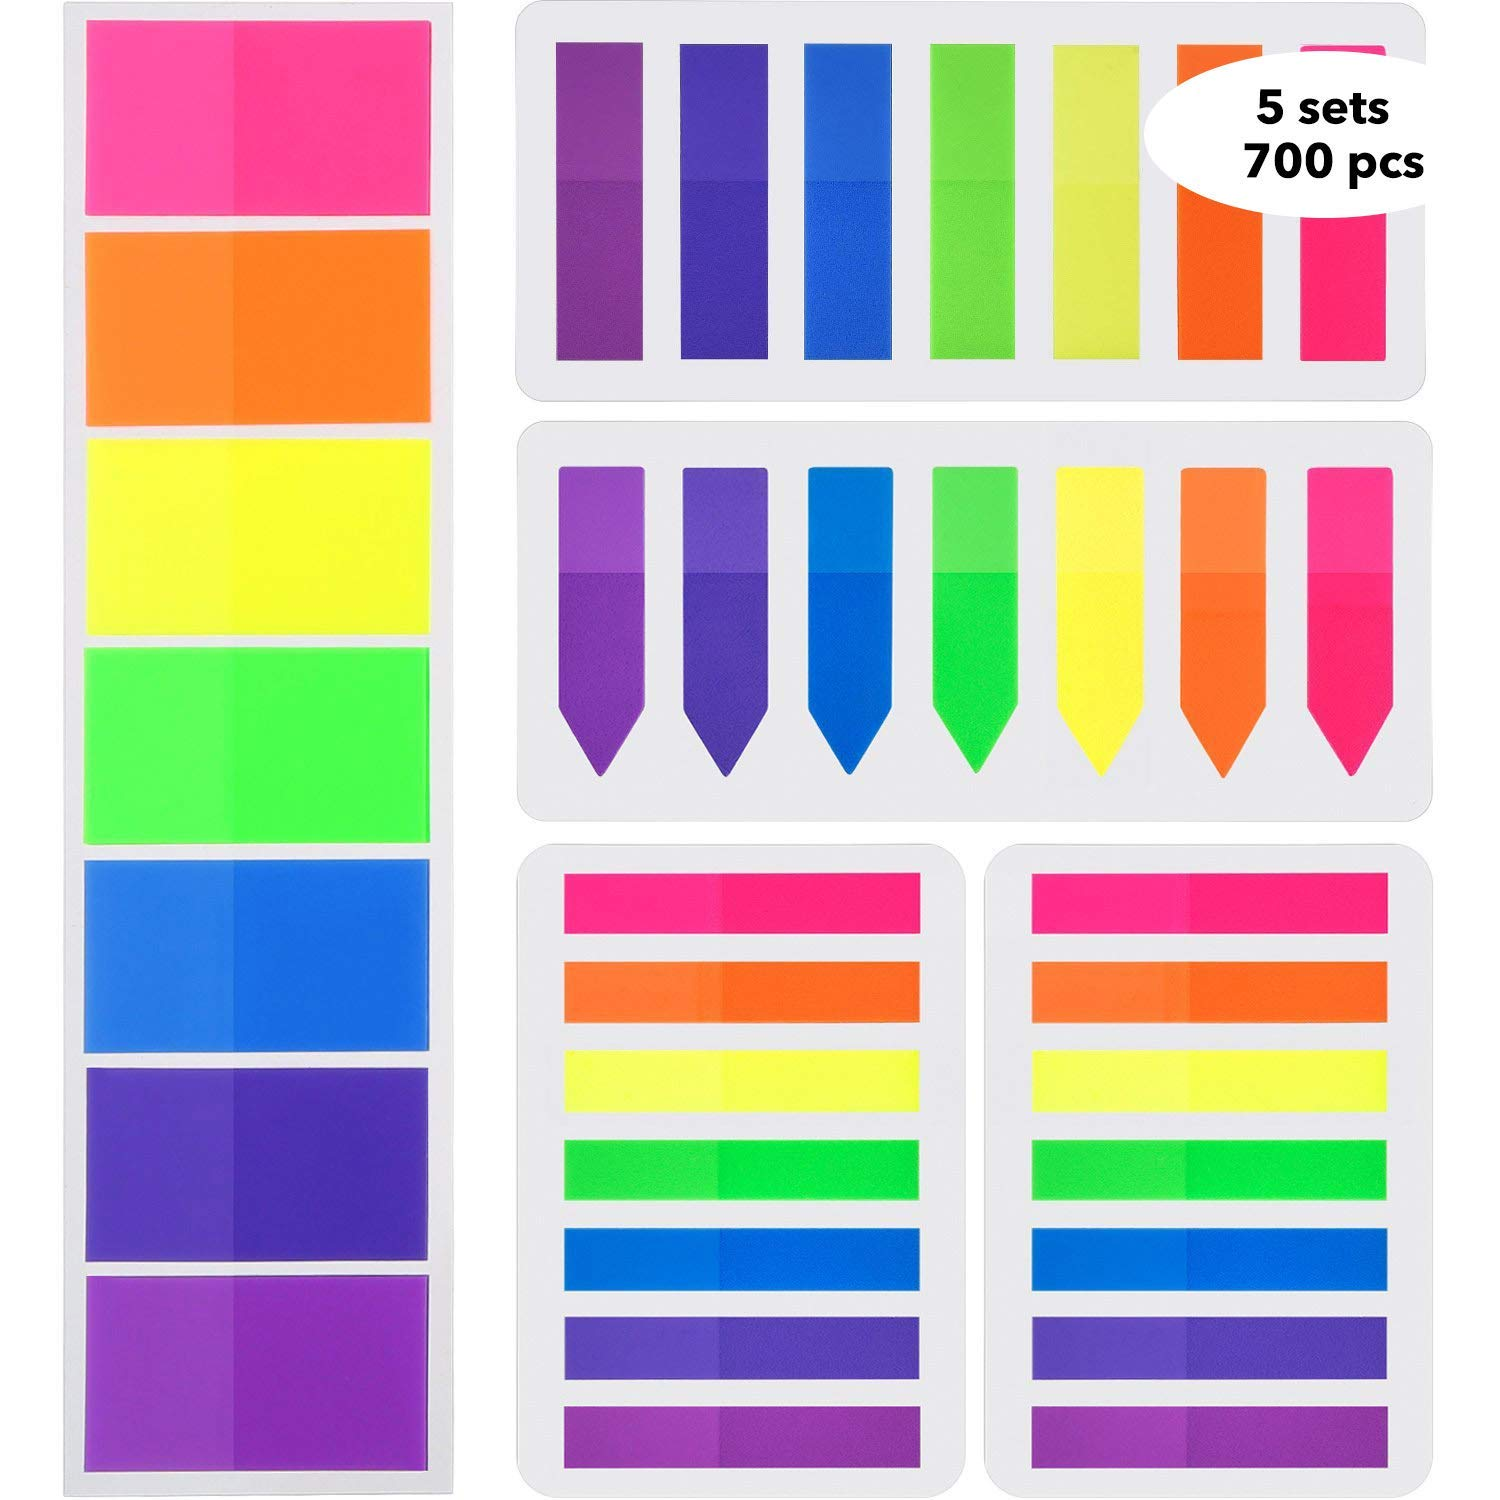 Flags Index Tabs Sticky Page Markers 700 pcs Adhesive Flag Tabs Rainbow Transparent Cute Sticky Notes Writable Labels 7 Colors for Binders, Files, Folders, Documents, Planners by Yollo by YOLLO